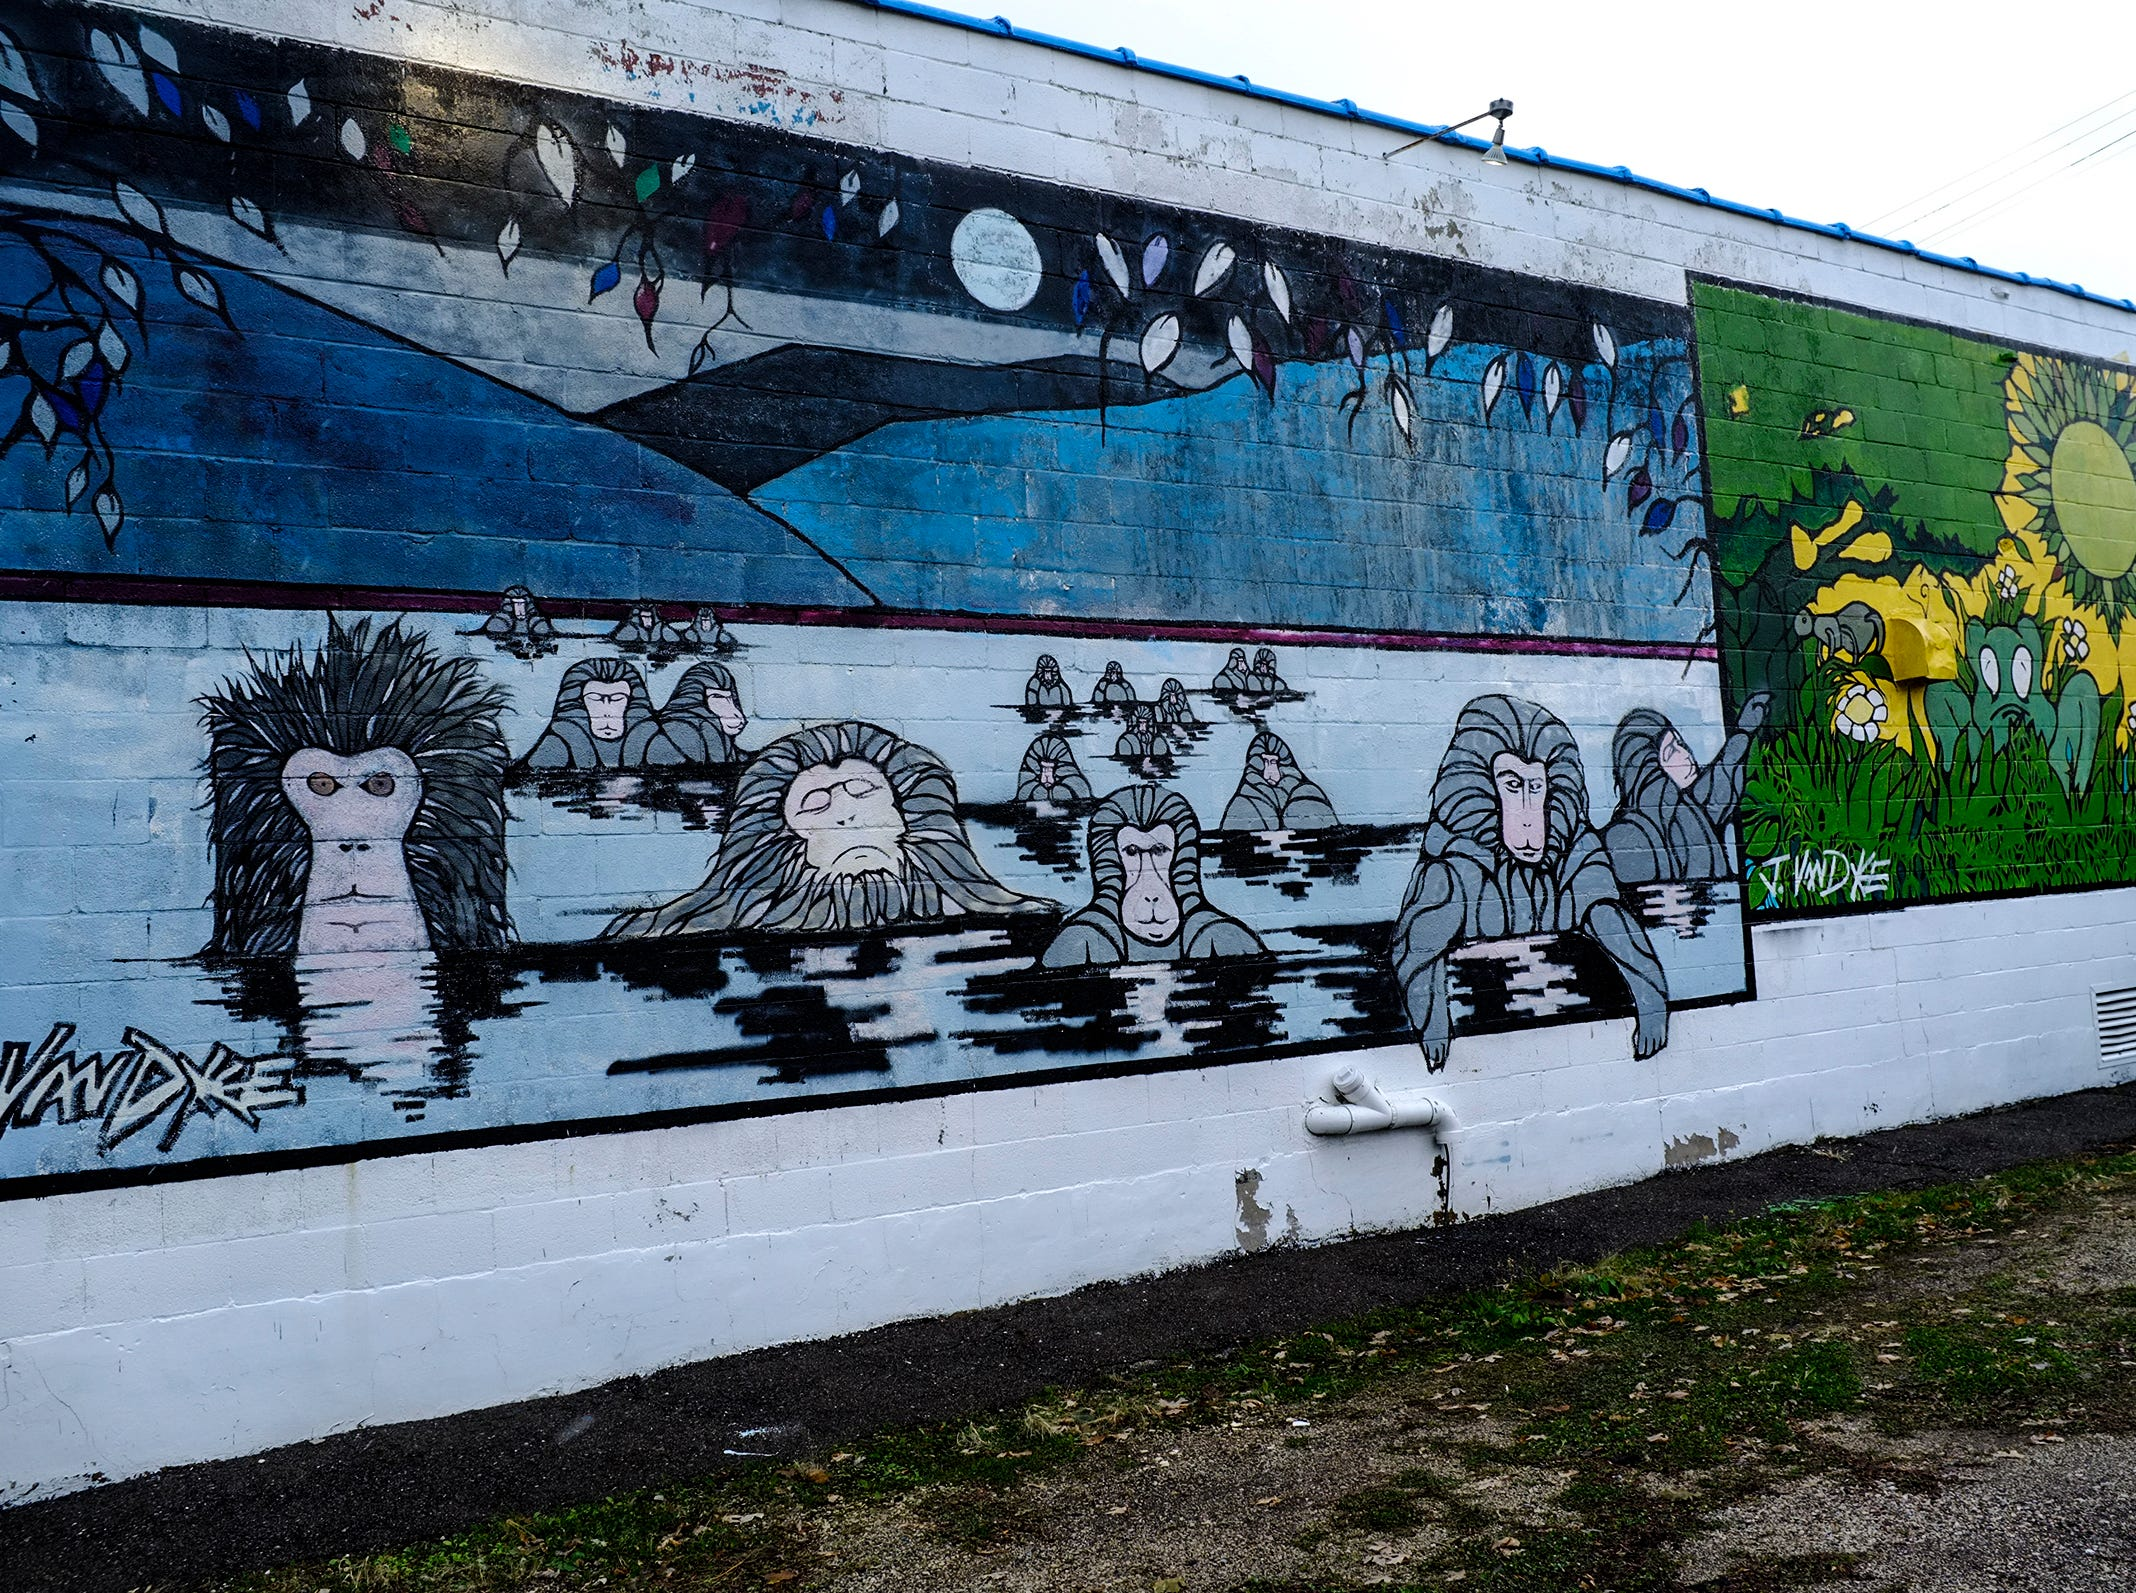 The wall at Hot Water Works at 2116 E. Michigan Avenue in Lansing by Julian VanDyke.